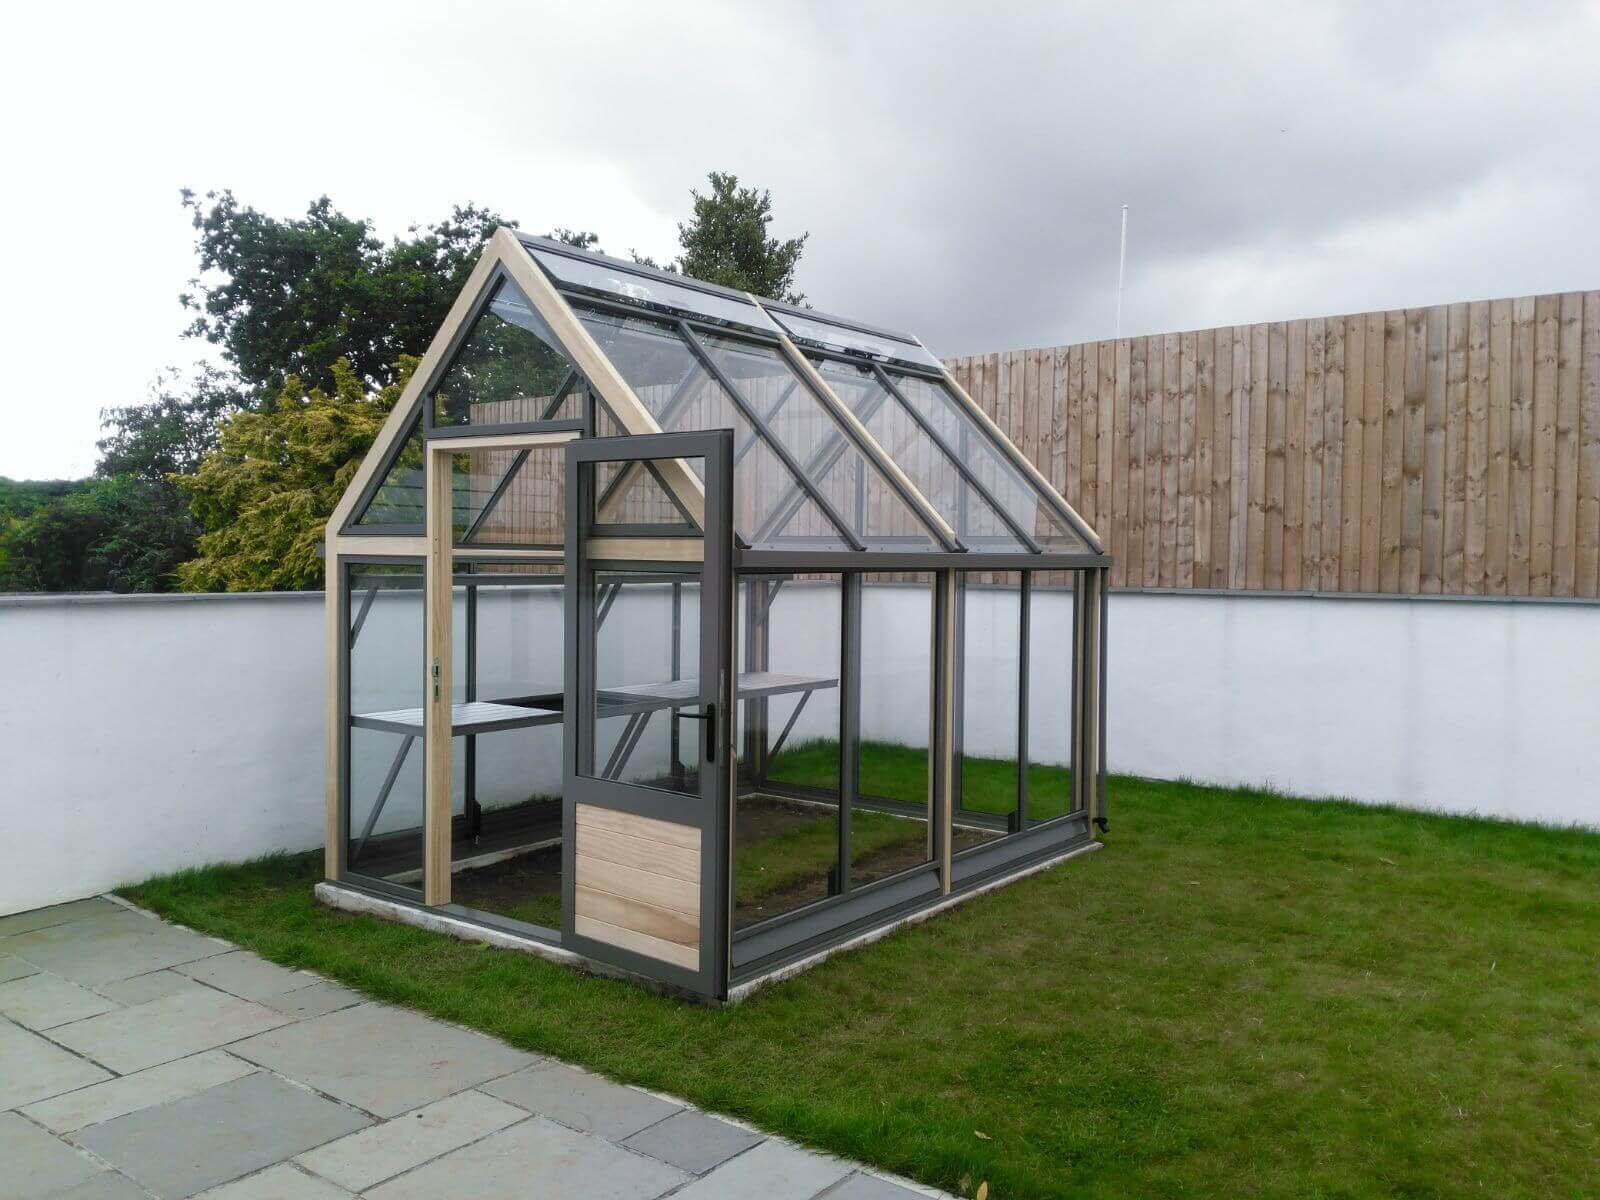 New Greenhouse in a modern garden setting